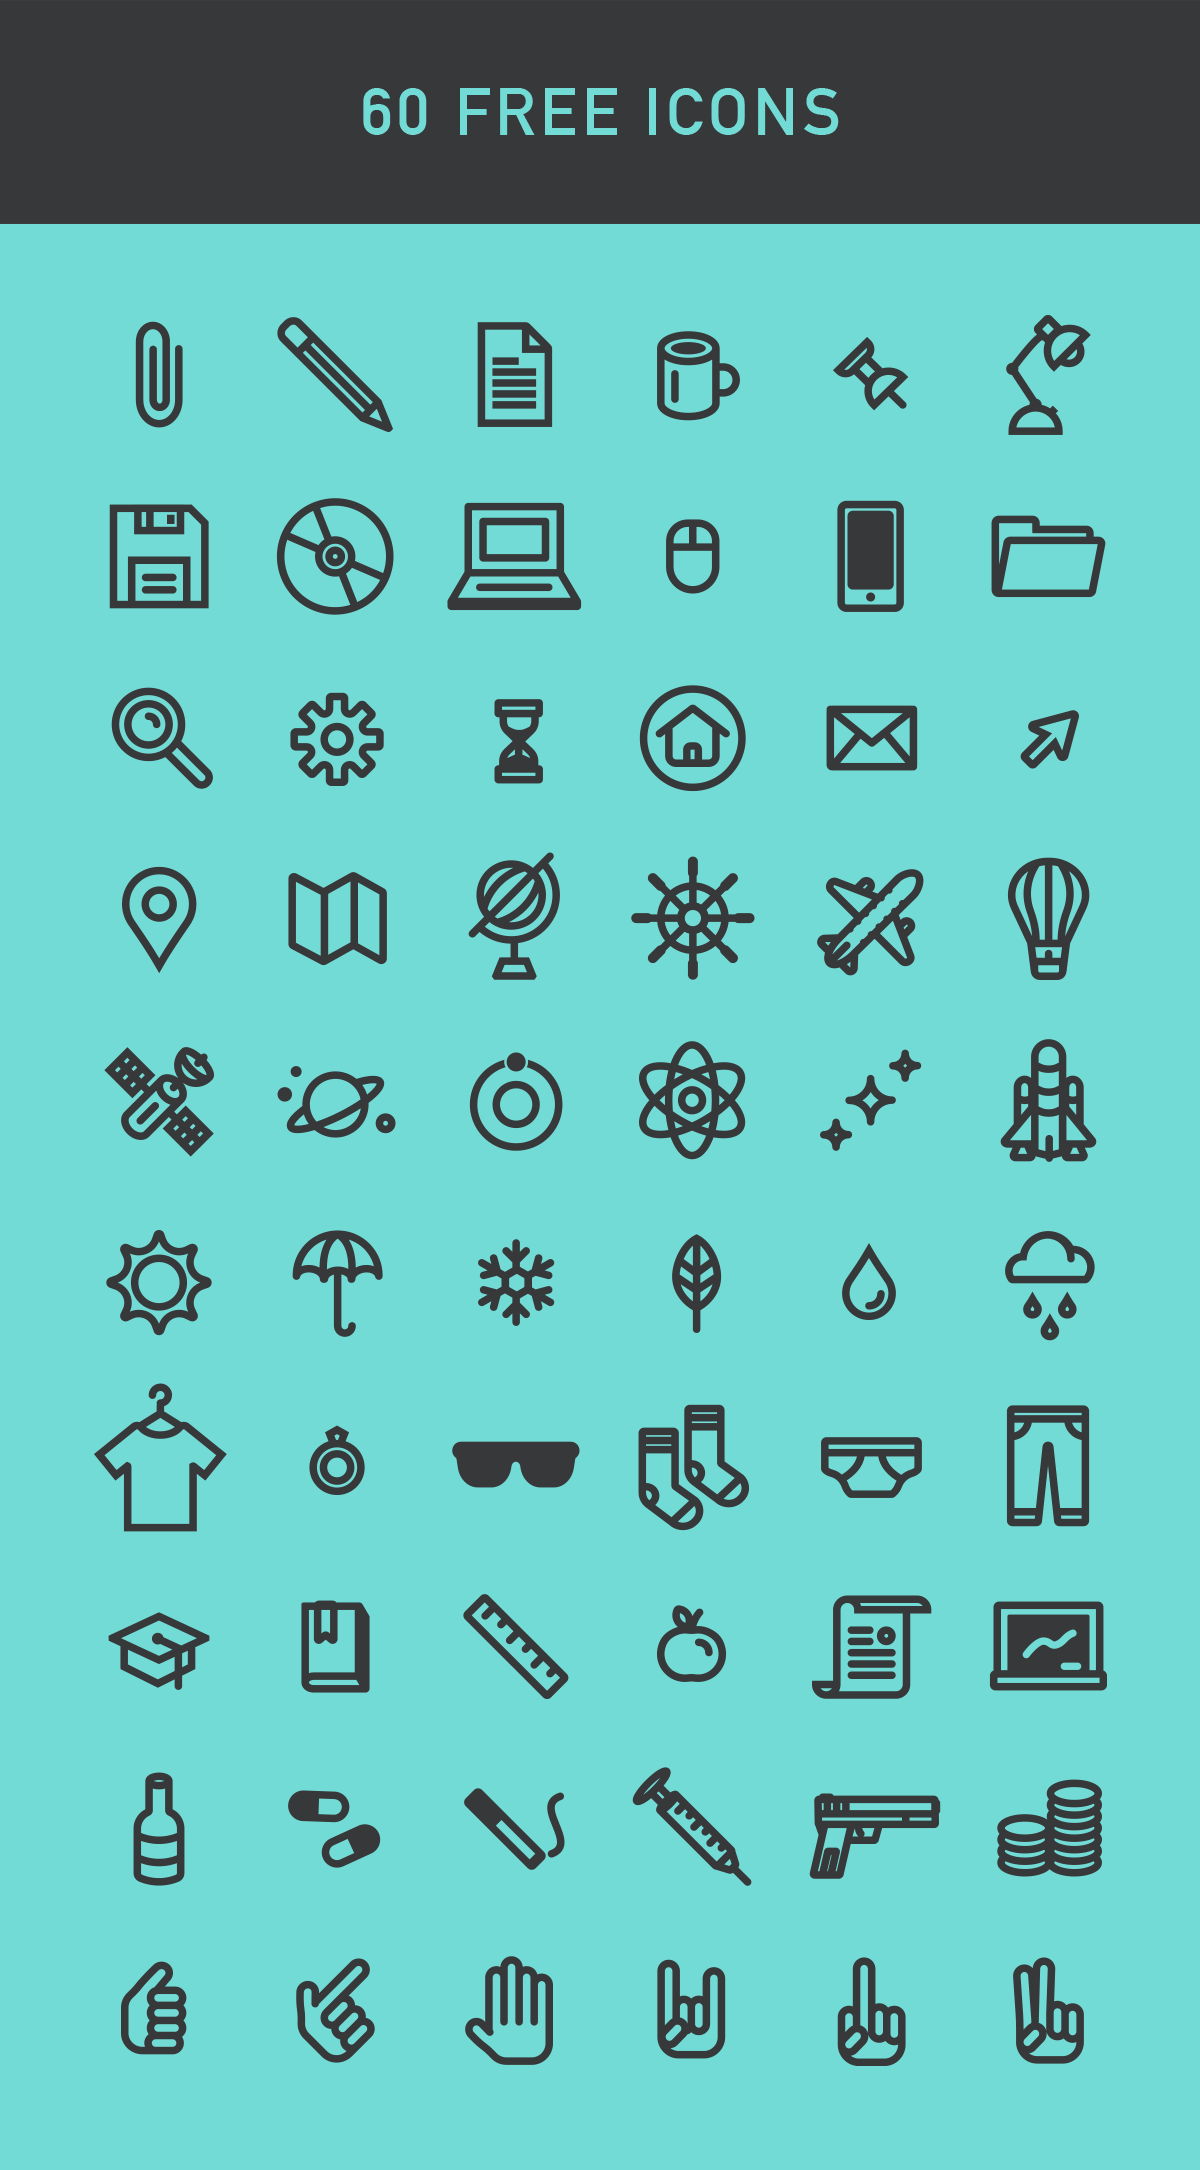 free-pack-60-vector-icons